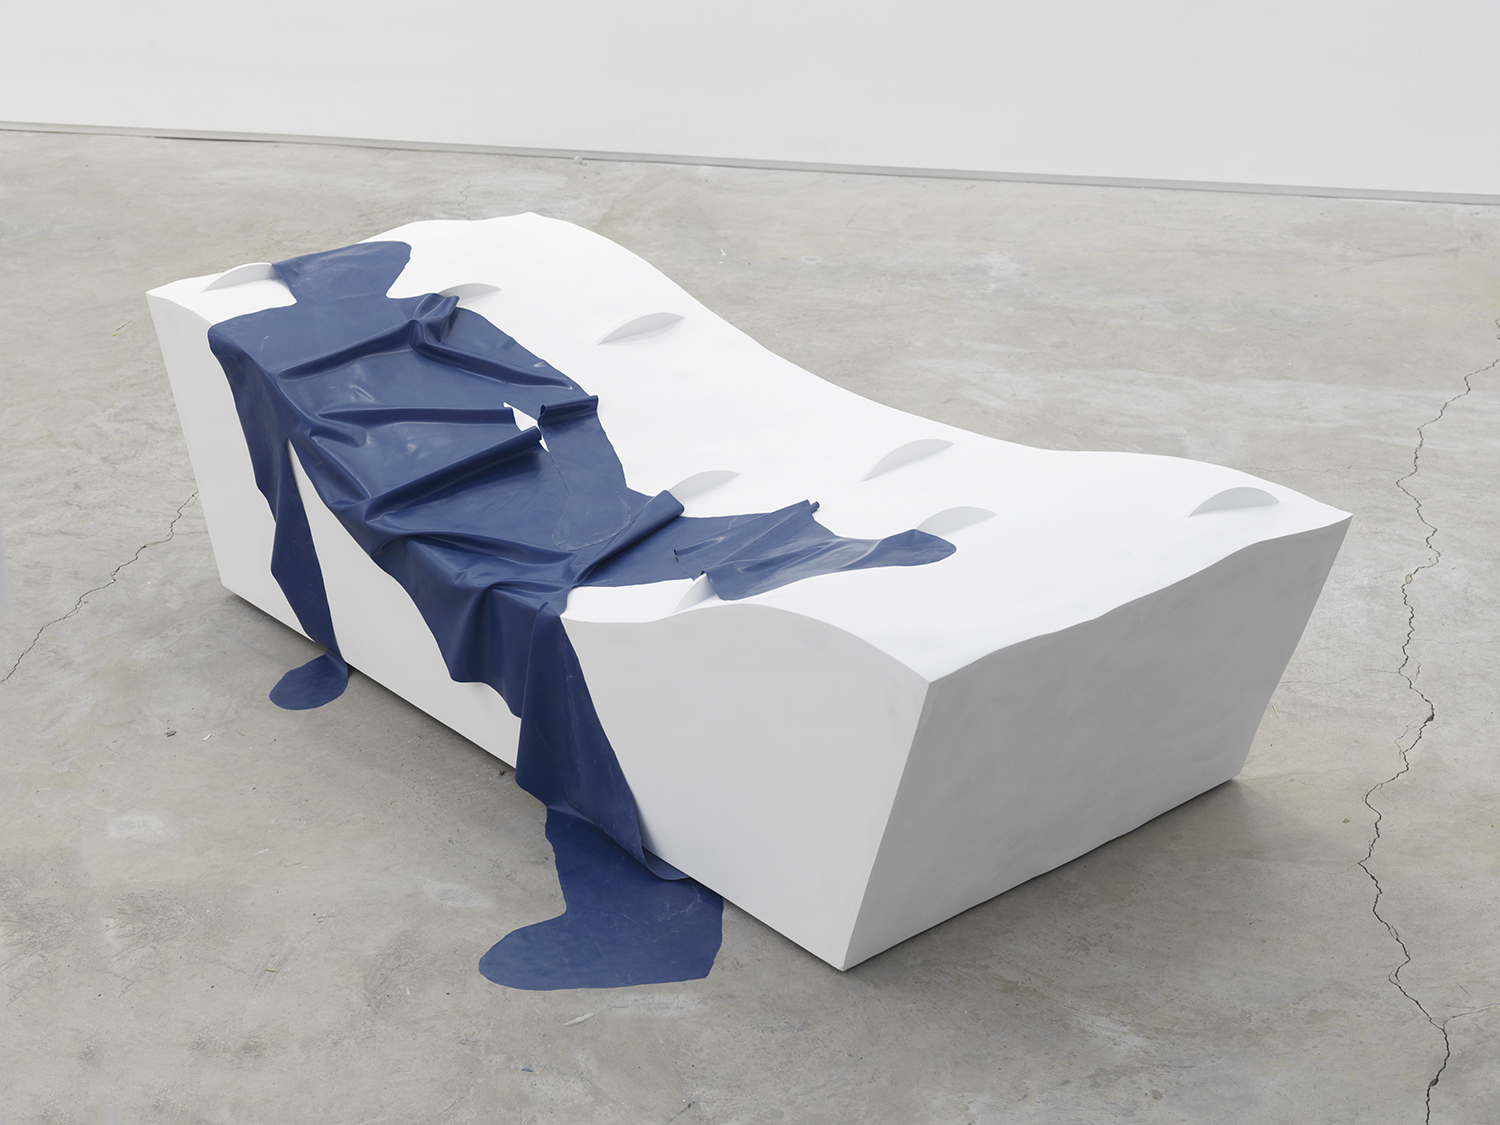 32H – EXISTENCE Passing through, being marked and to some extent damaged by the geography of the present. 2016, plaster, foam, wood and latex, 21 x 73 x 30 inches